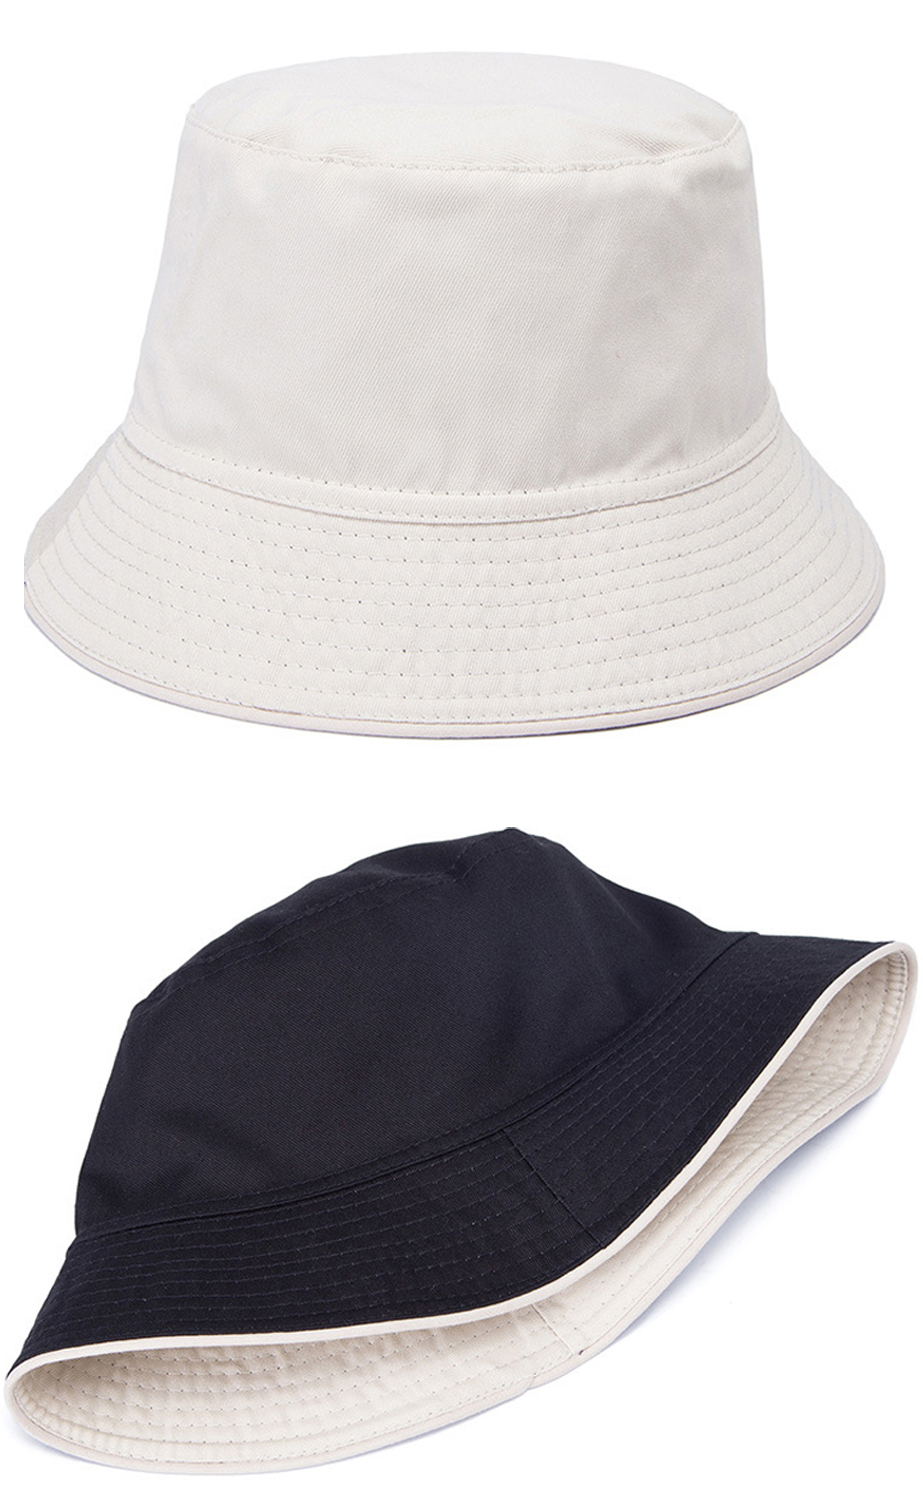 0aa499e170b Fashion Double Sides Bucket Hat Custom Cotton Reversible Bucket Sun Hat Cap  Fishing Hat